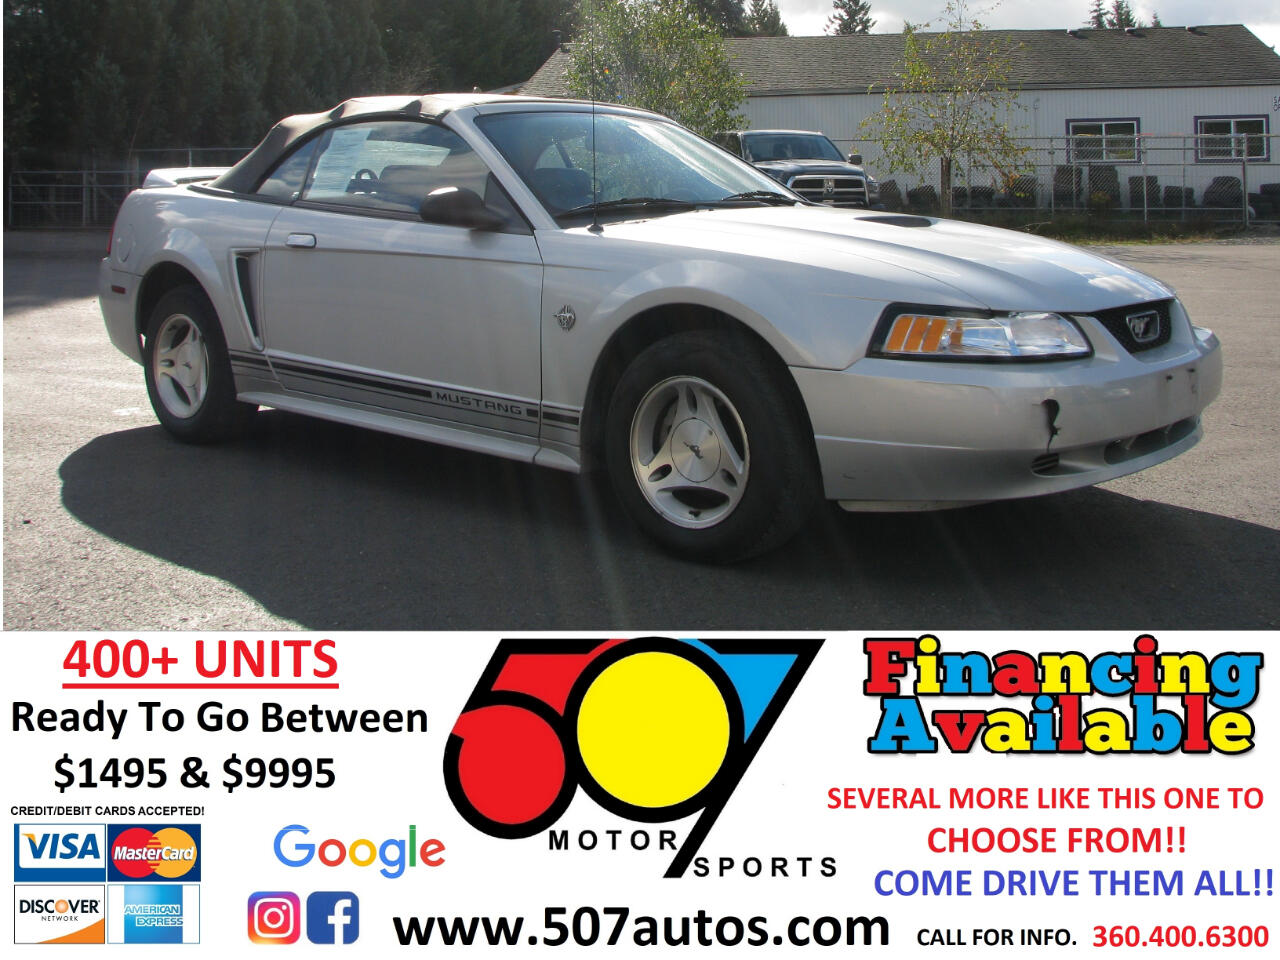 Ford Mustang 2dr Convertible 1999